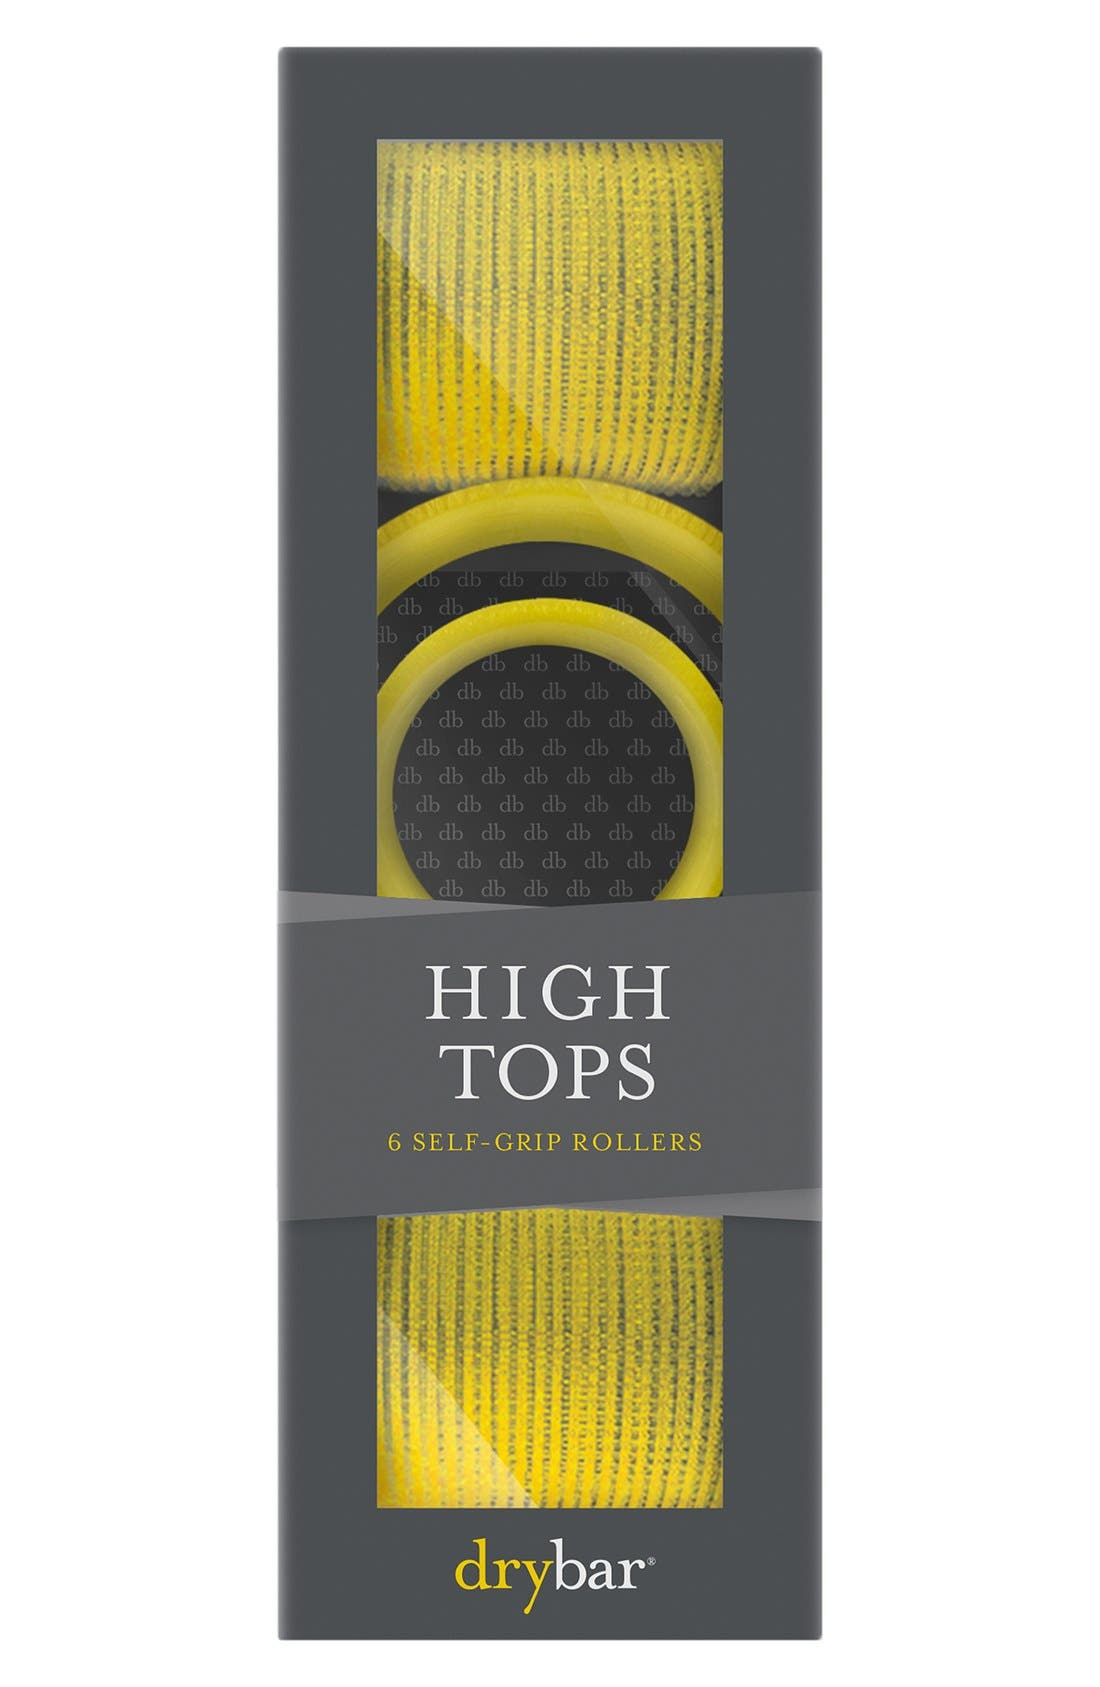 DRYBAR, High Tops Self-Grip Rollers, Alternate thumbnail 2, color, NO COLOR